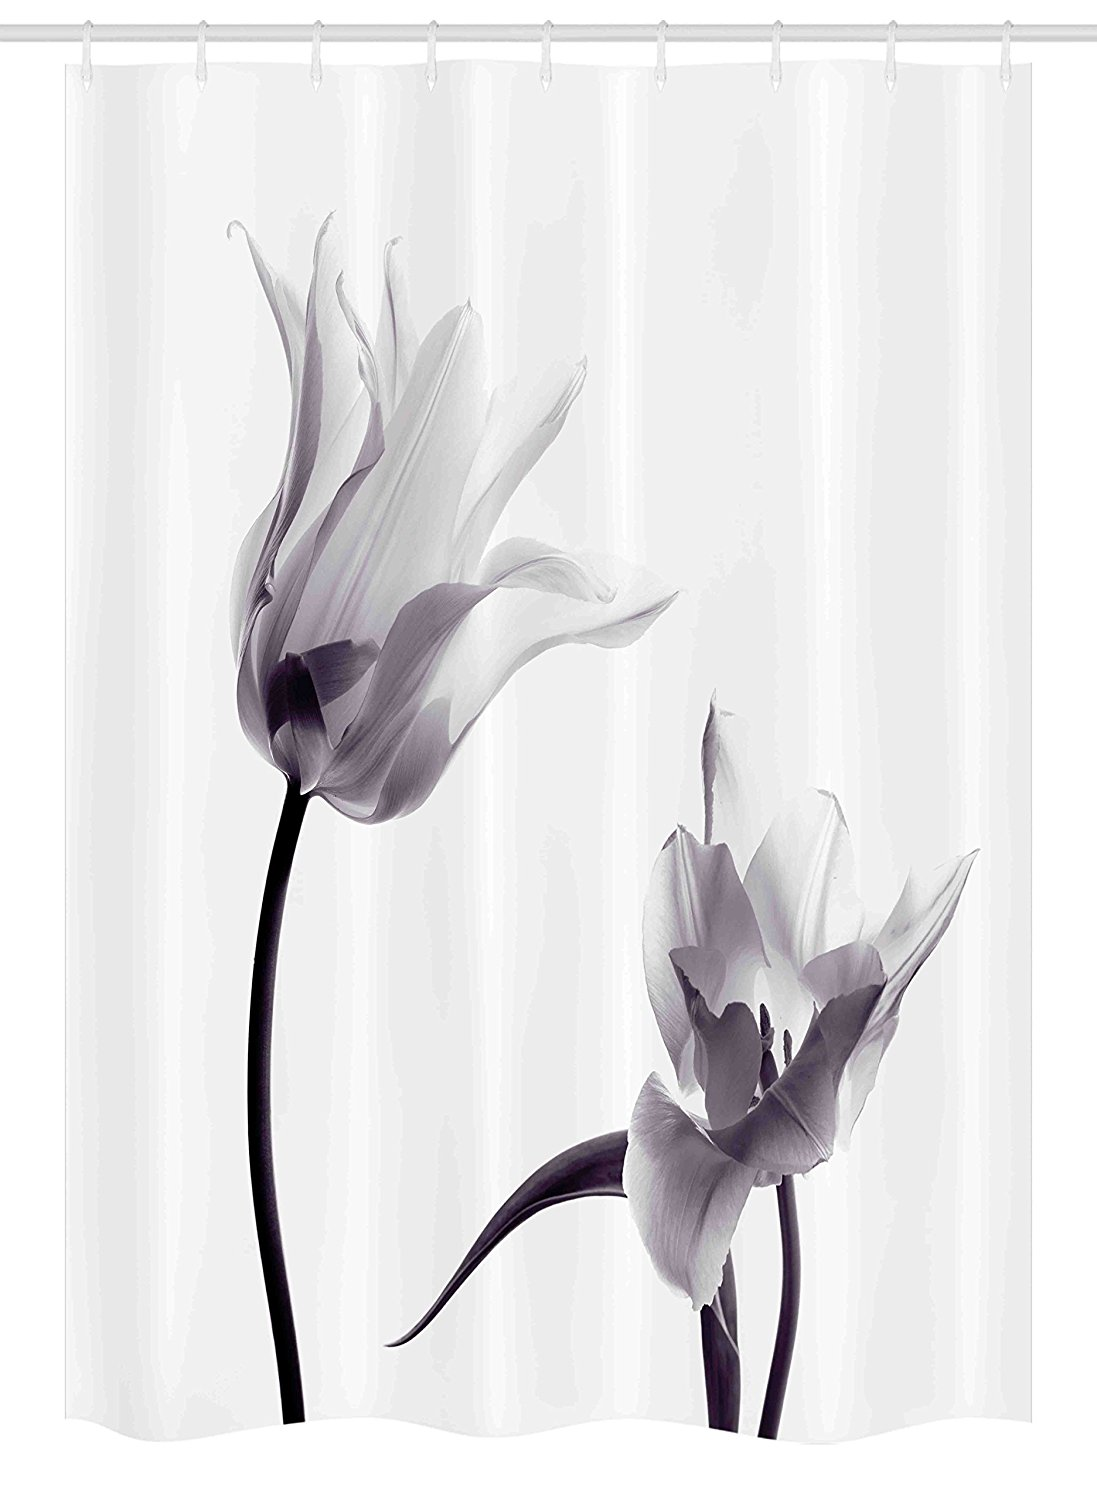 Black and White Stall Shower Curtain Close Up Digital Saturated Tulip Petals with Minimalist Faded Effect Bathroom Decor Set